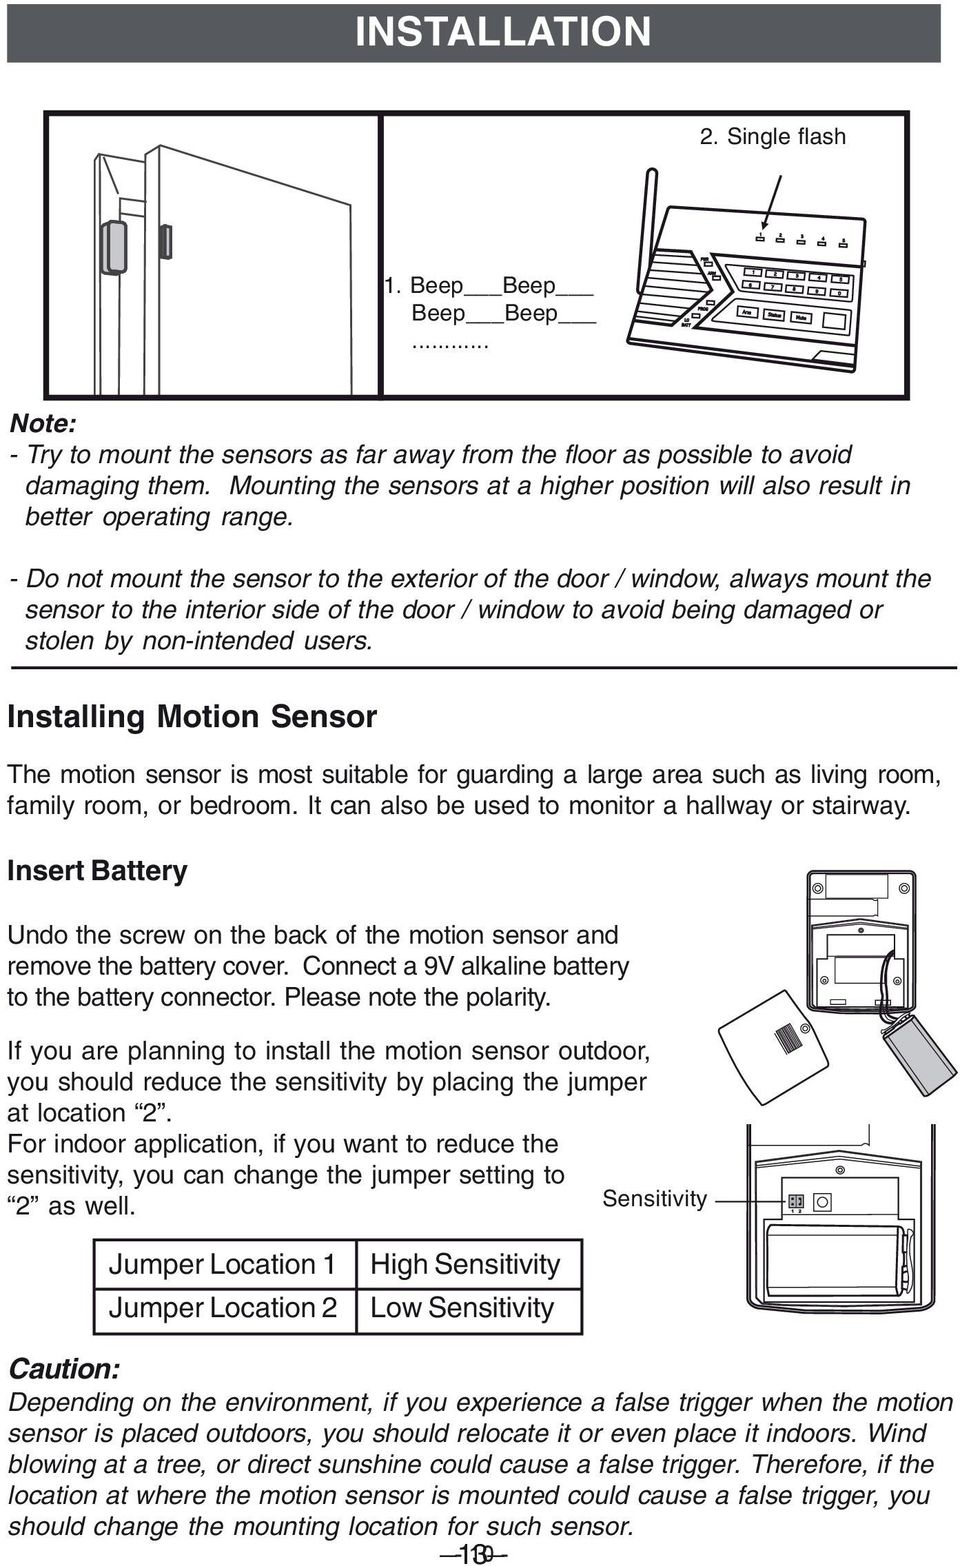 - Do not mount the sensor to the exterior of the door / window, always mount the sensor to the interior side of the door / window to avoid being damaged or stolen by non-intended users.